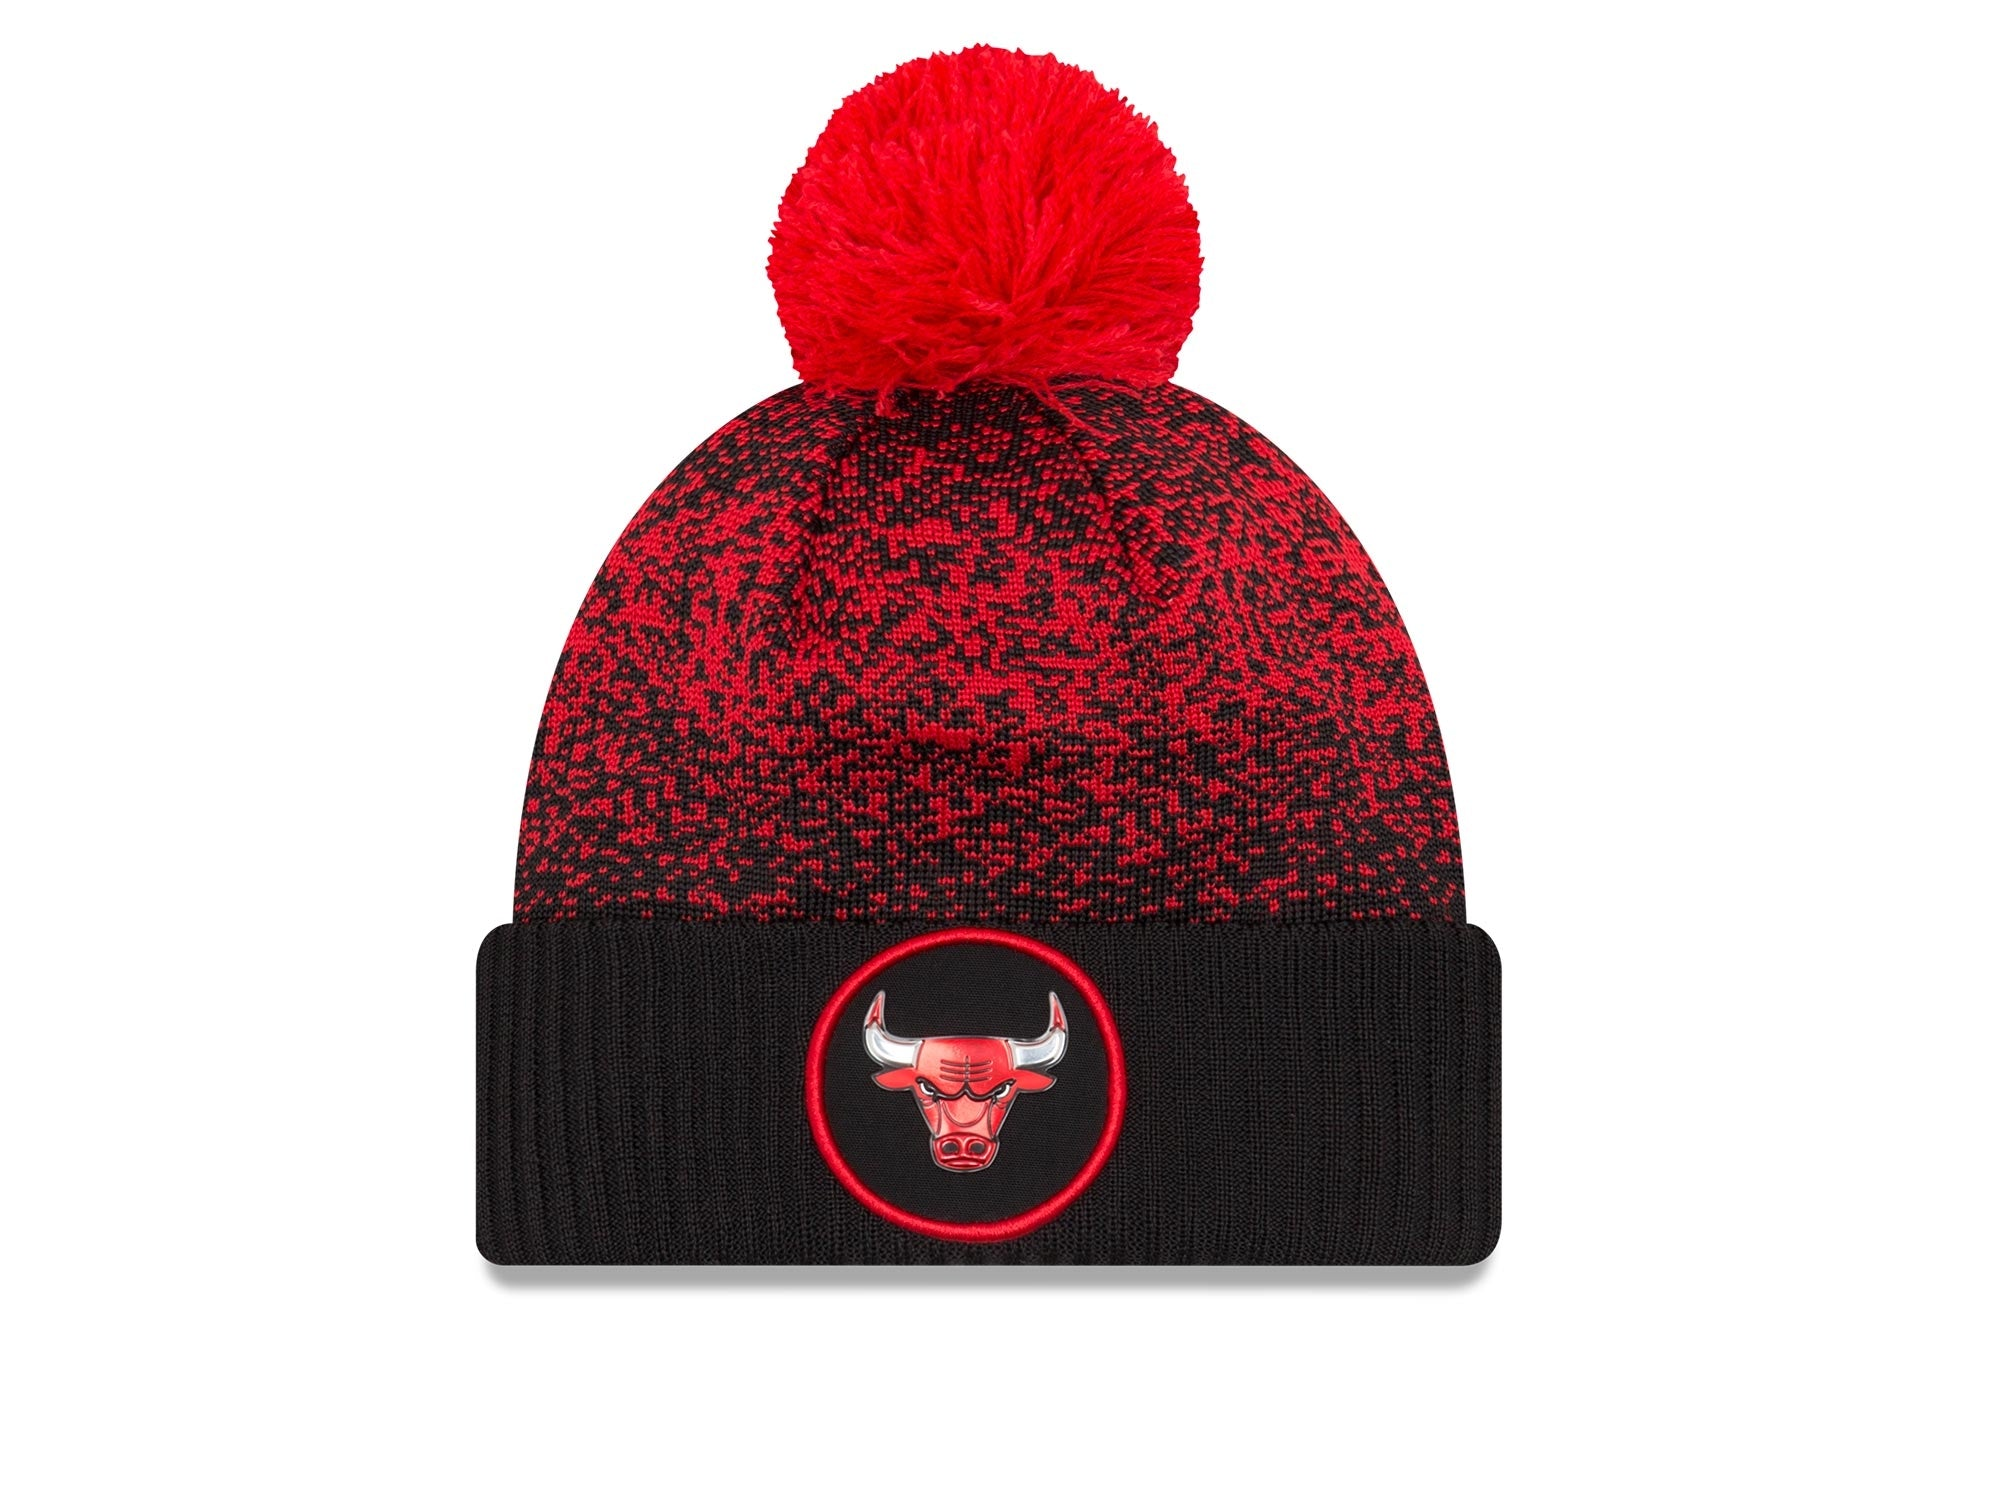 Beanie New Era Jr Nba17 Onc Pom Chibul Unisex